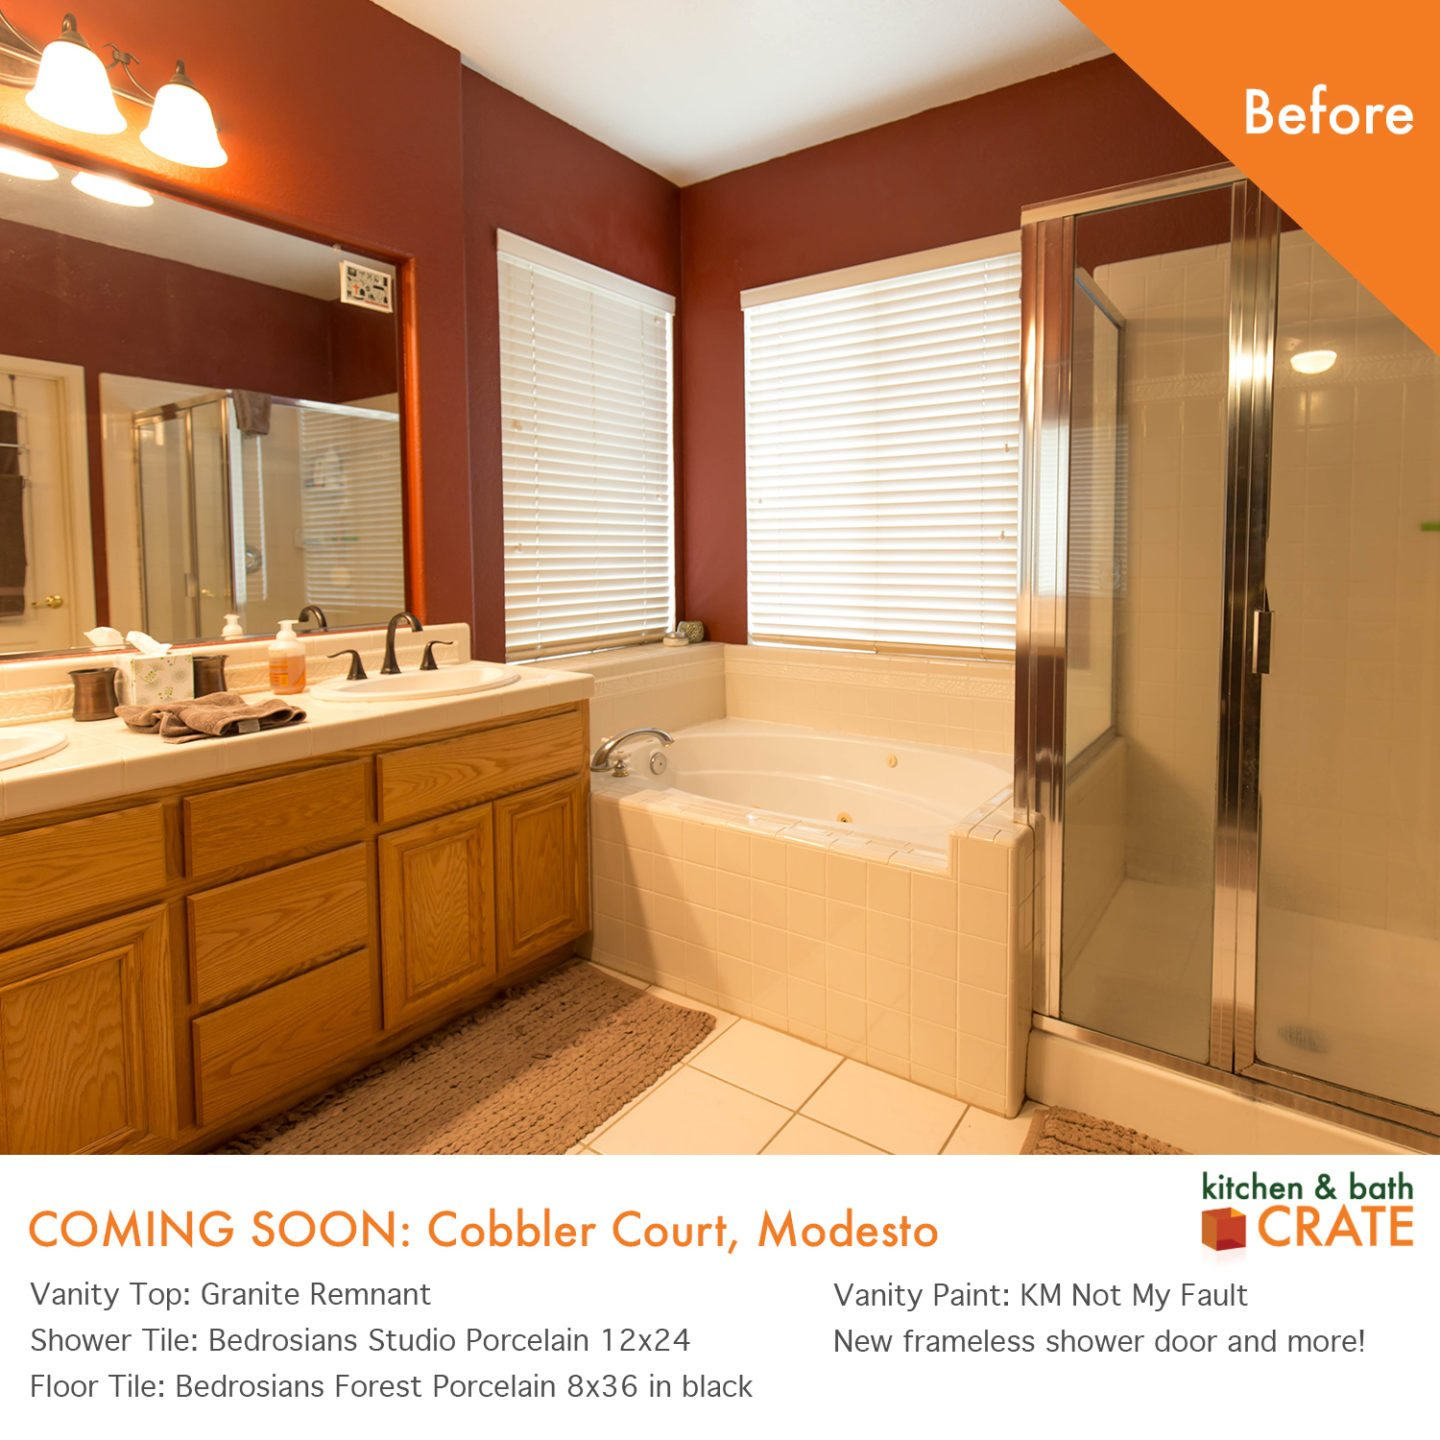 Bathroom Remodel Modesto Bathcrate Cobbler Court Is